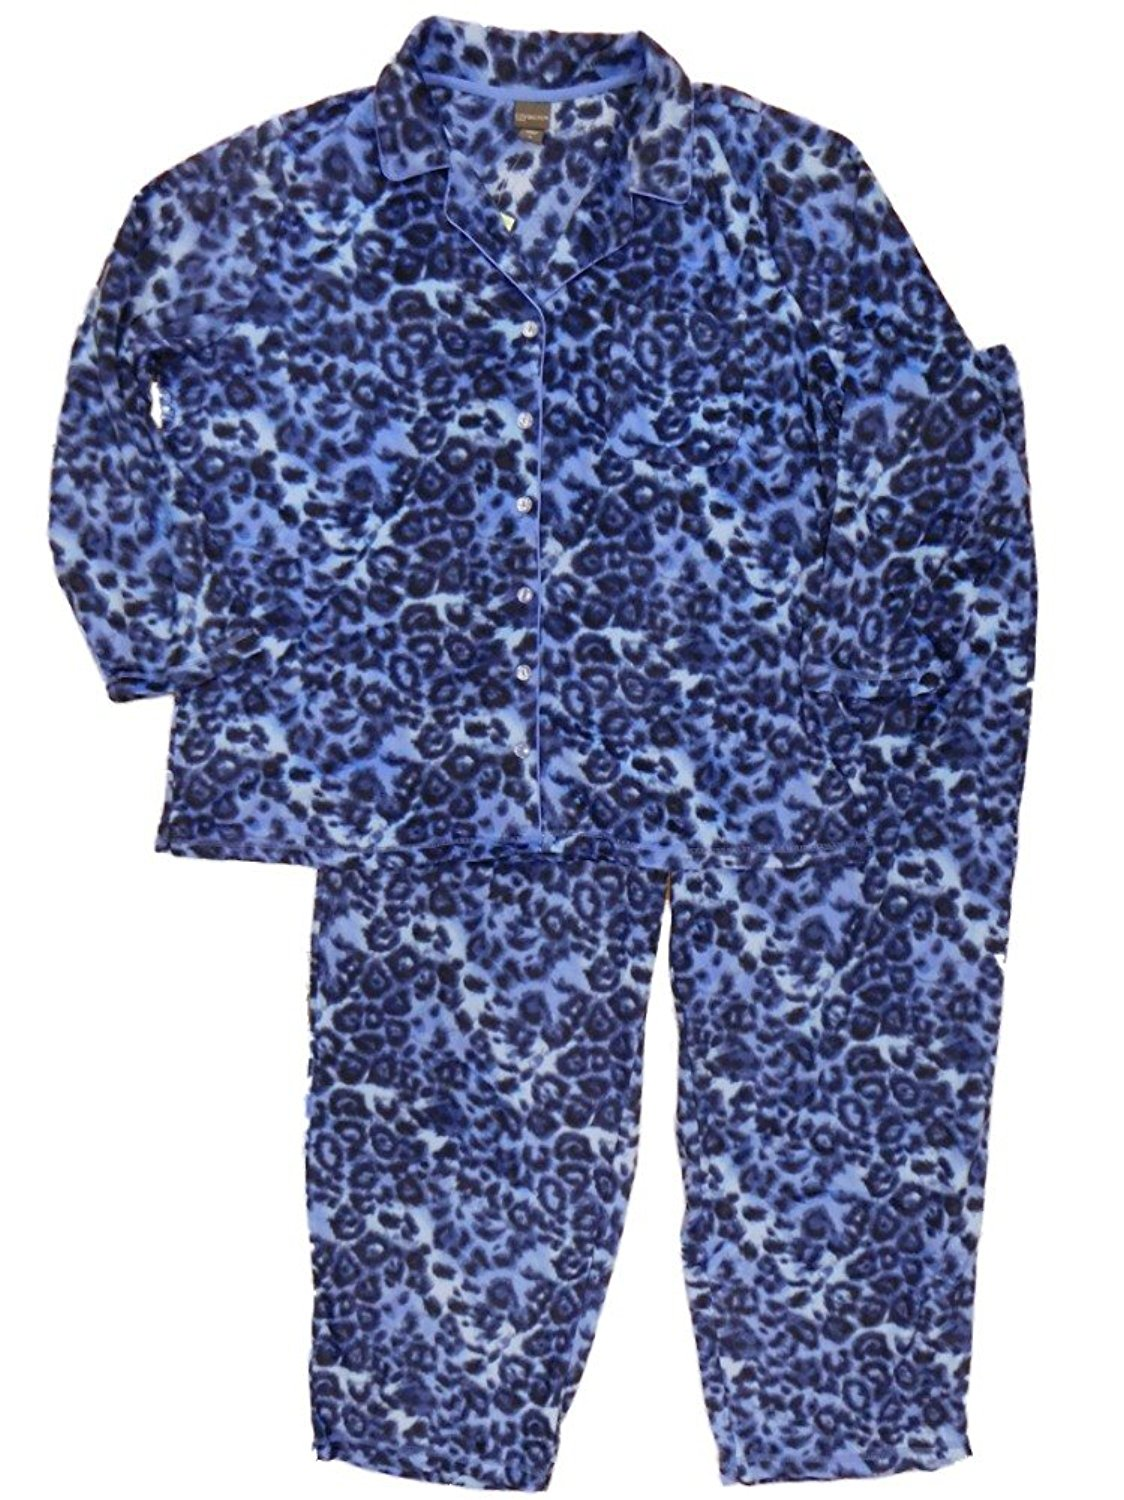 a128fb6855 Get Quotations · Covington Womens Blue Leopard Pajamas Cheetah Animal Print  Fleece Sleep Set Plus Size